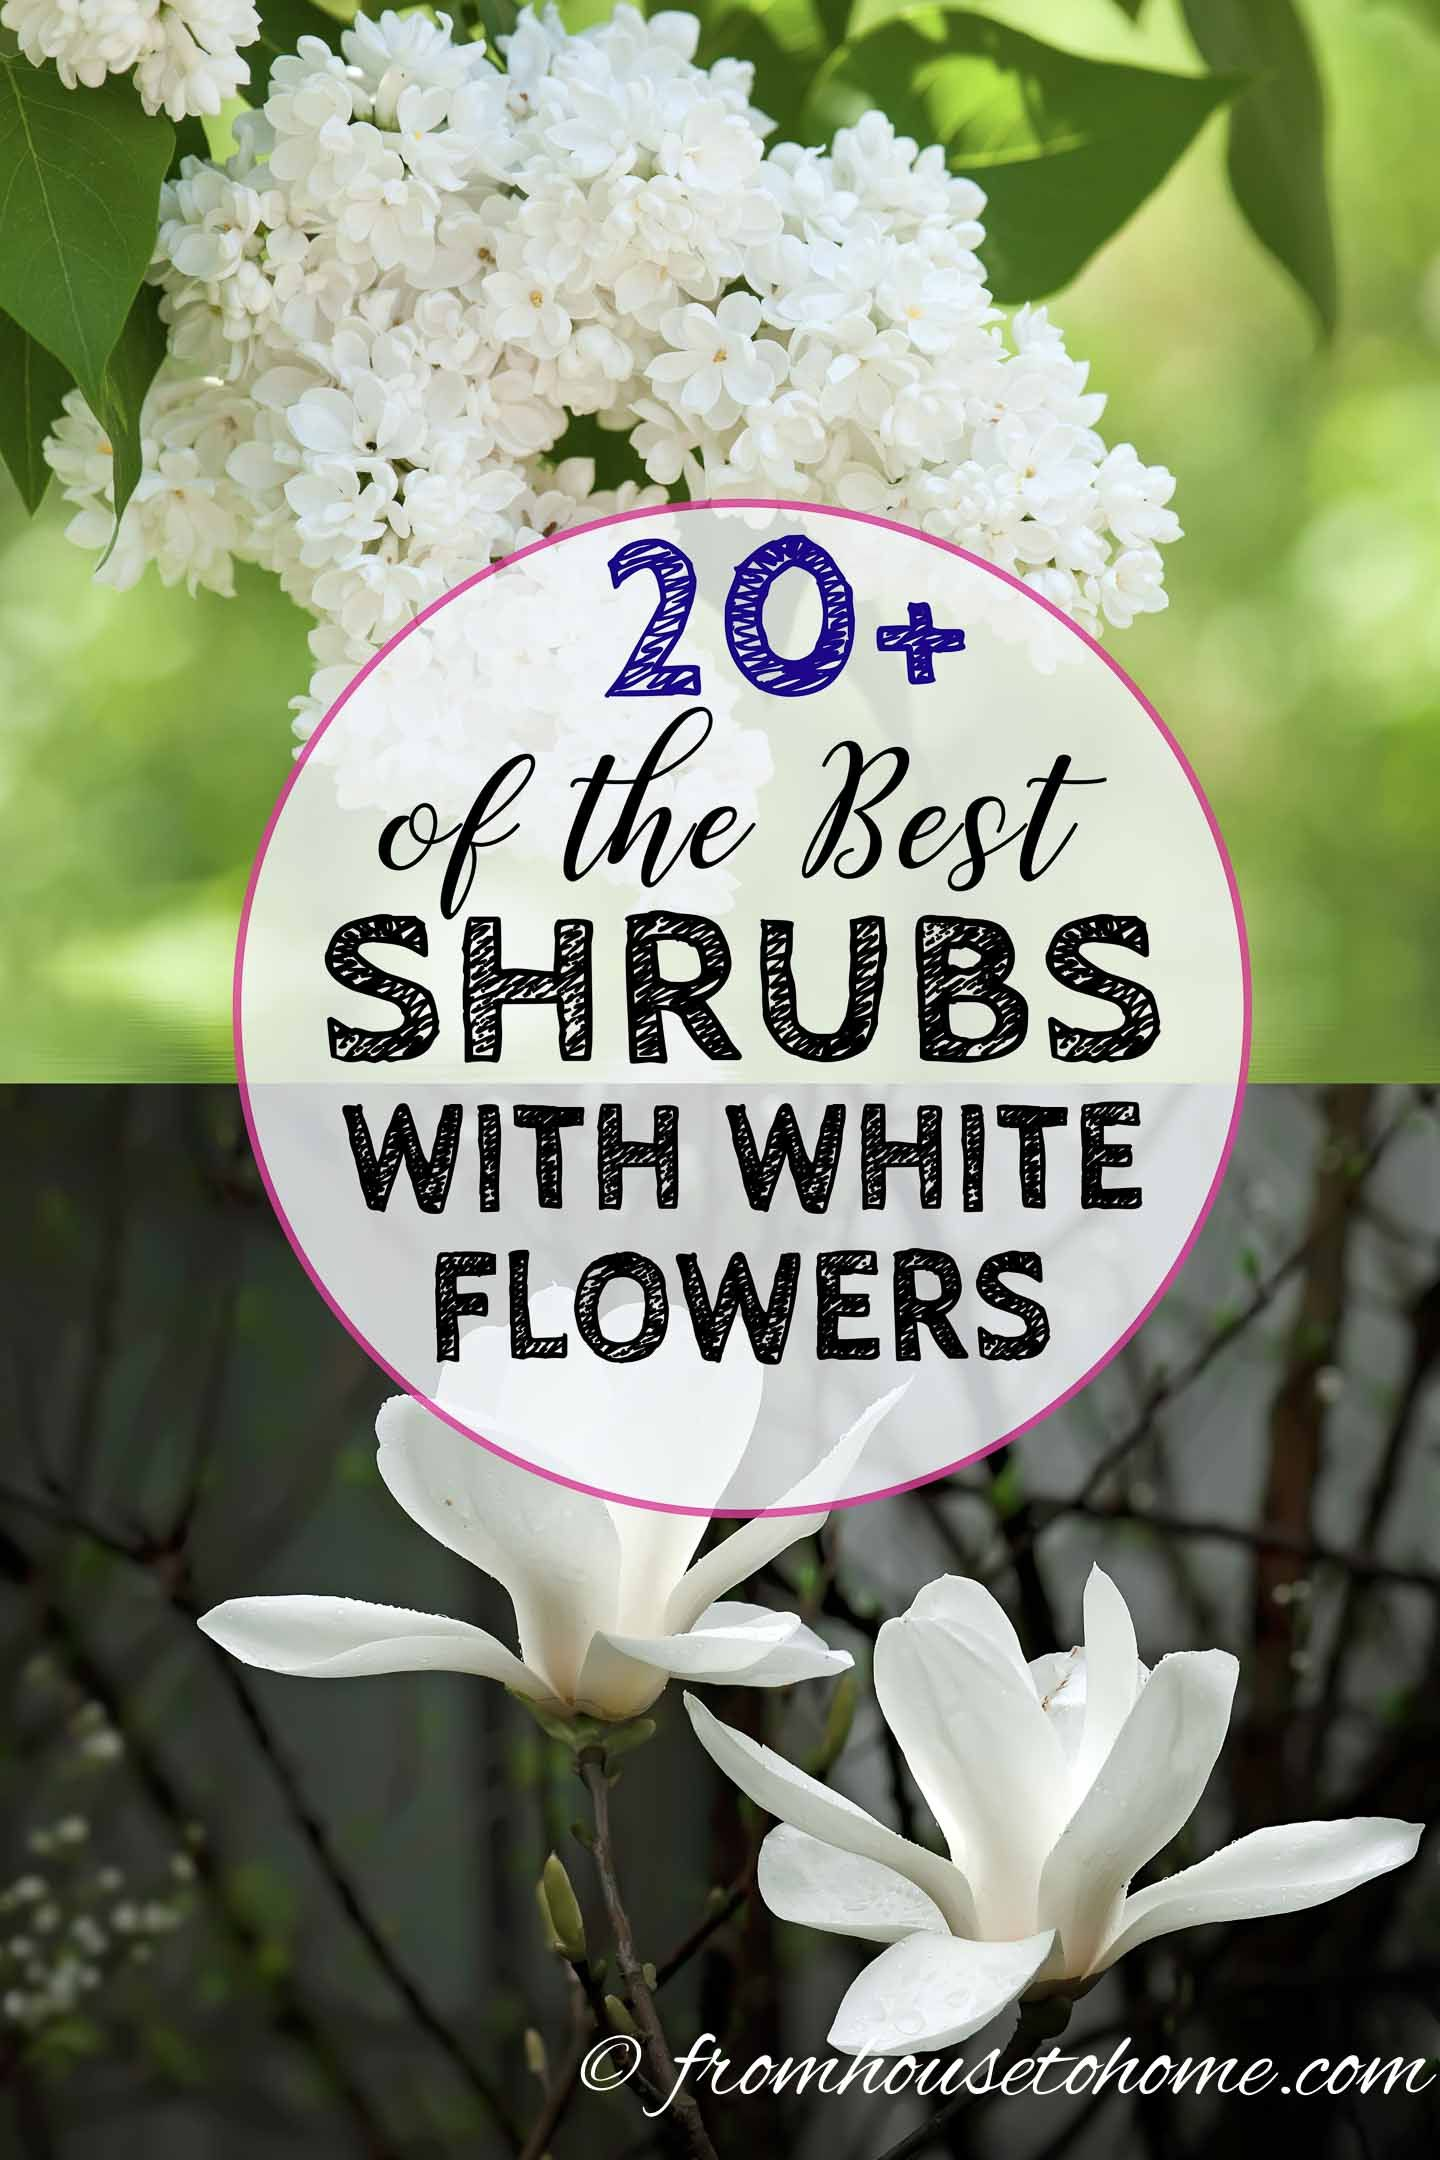 White Flowering Shrubs 20 Of The Best Varieties For Your Garden Gardening From House To Home White Flowering Shrubs Bushes And Shrubs Flowering Shrubs